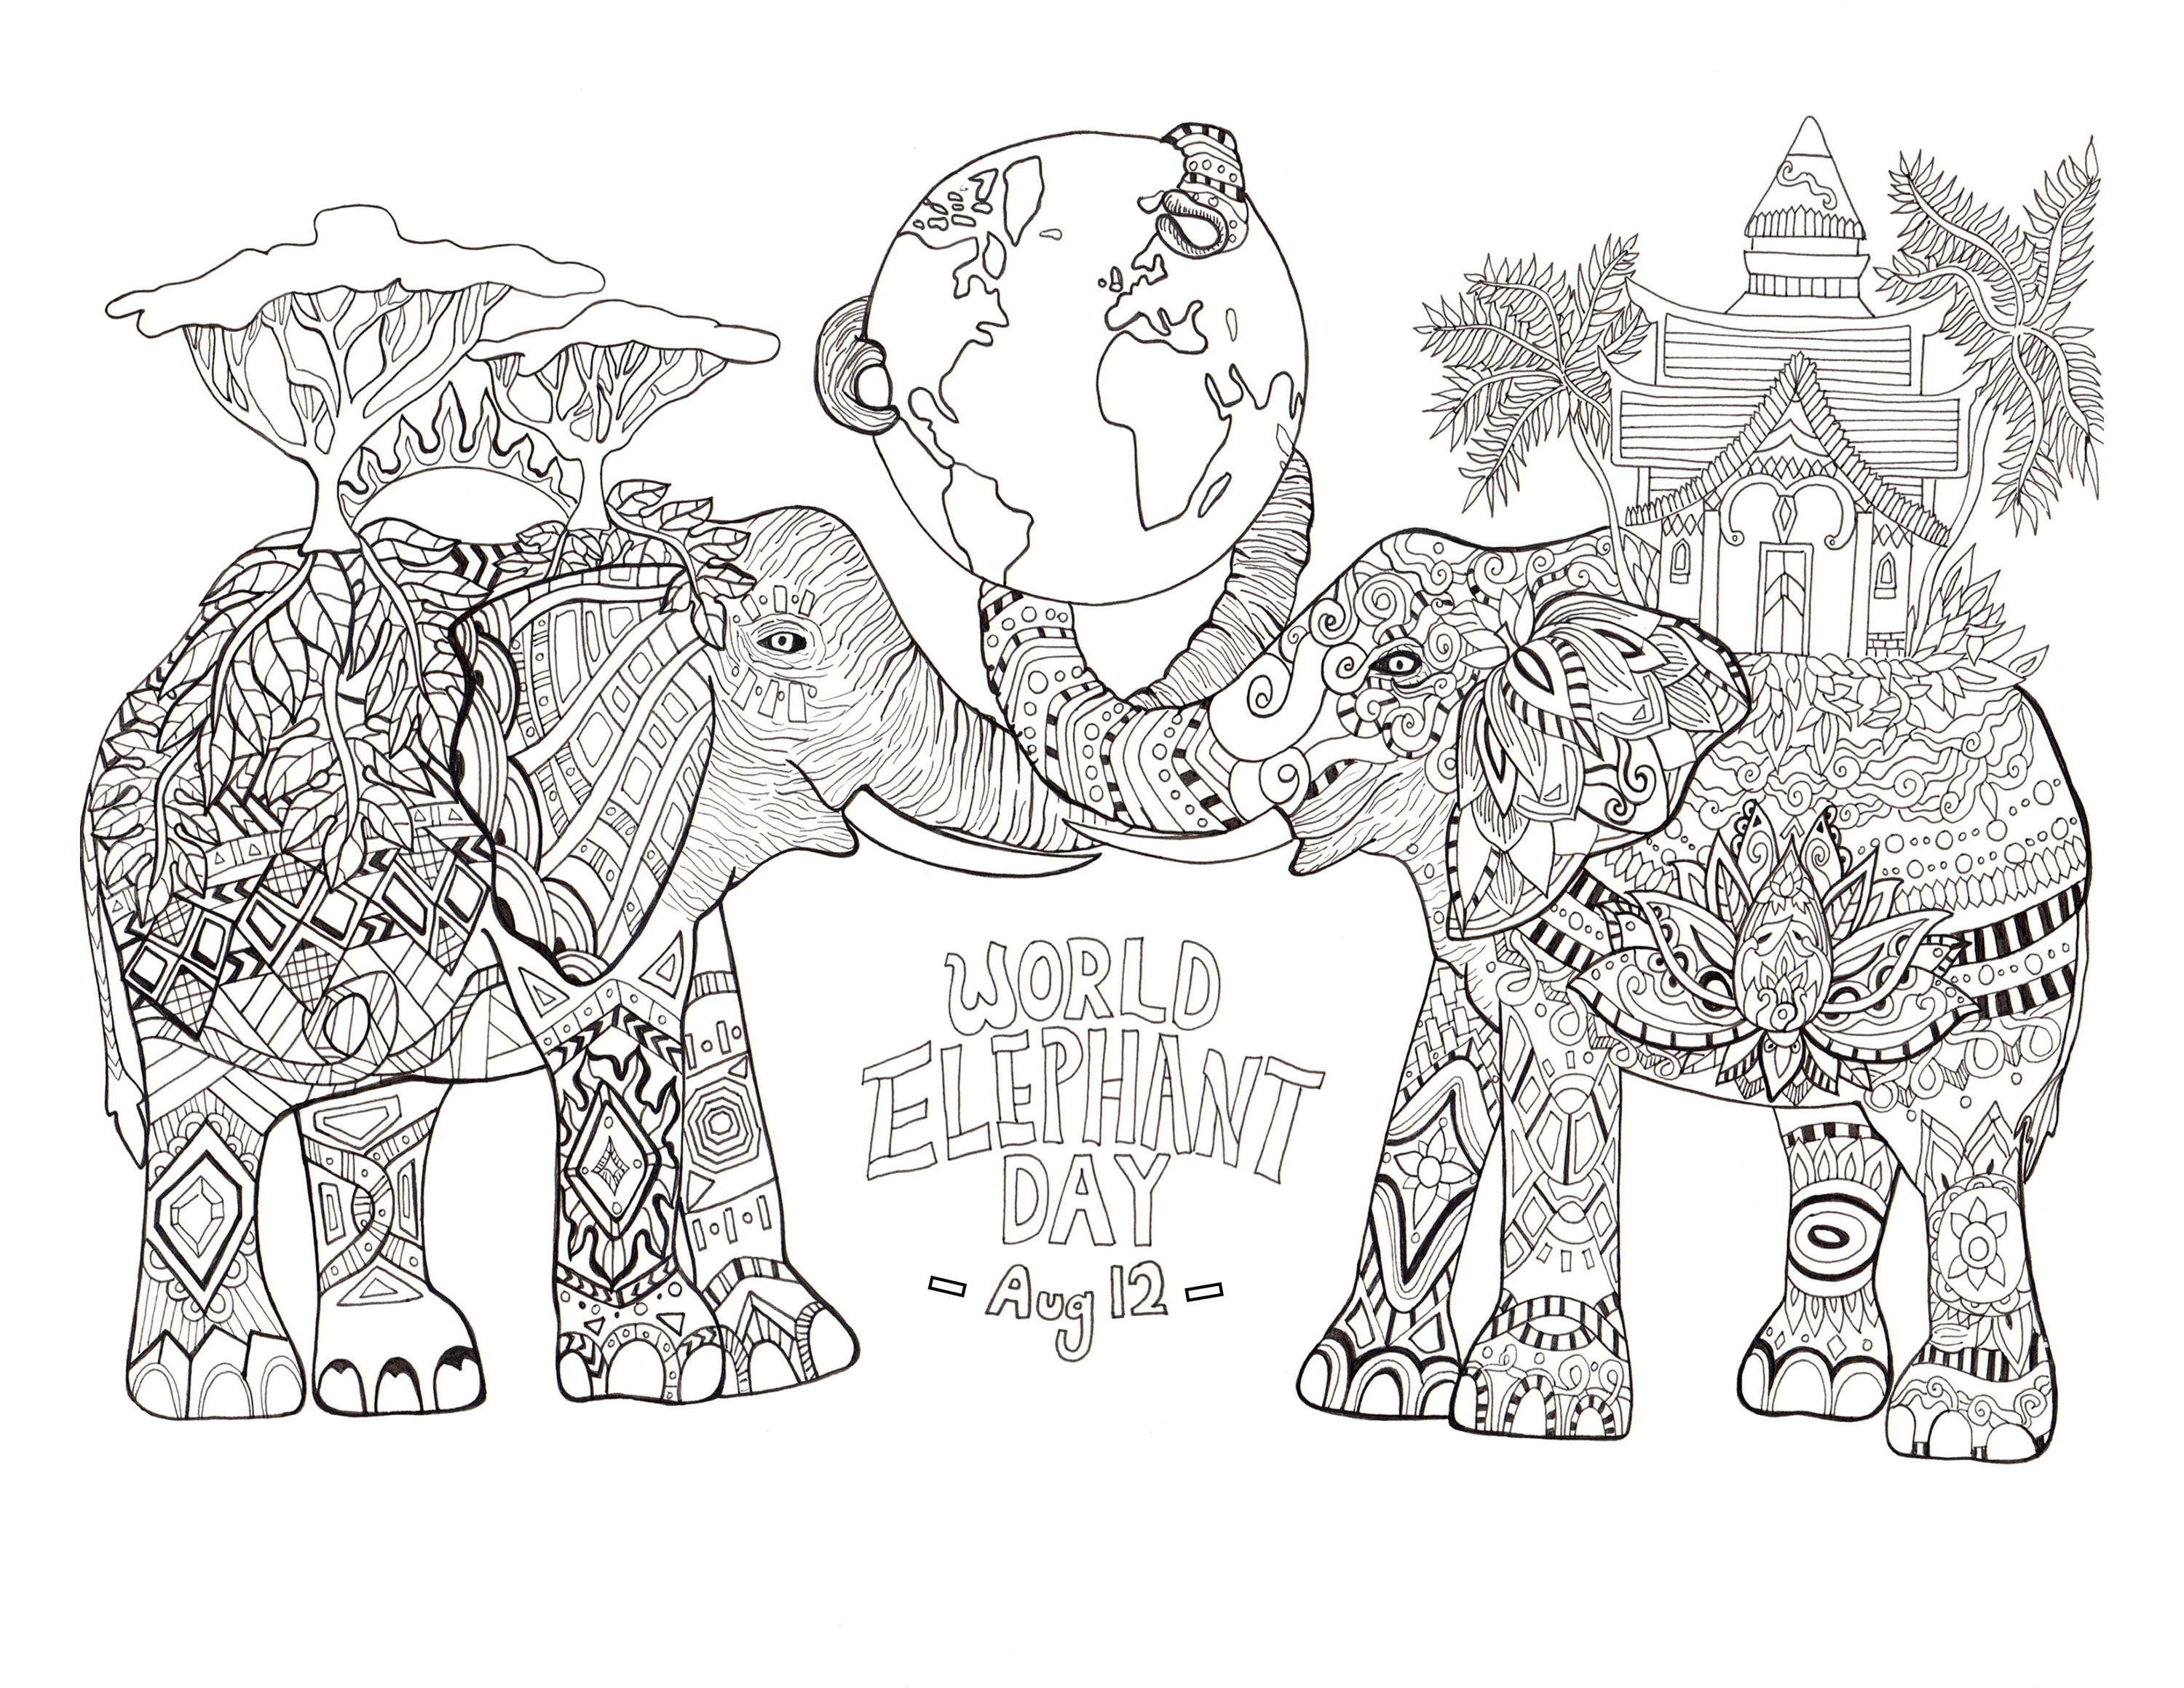 World elephant day - Elephants Adult Coloring Pages